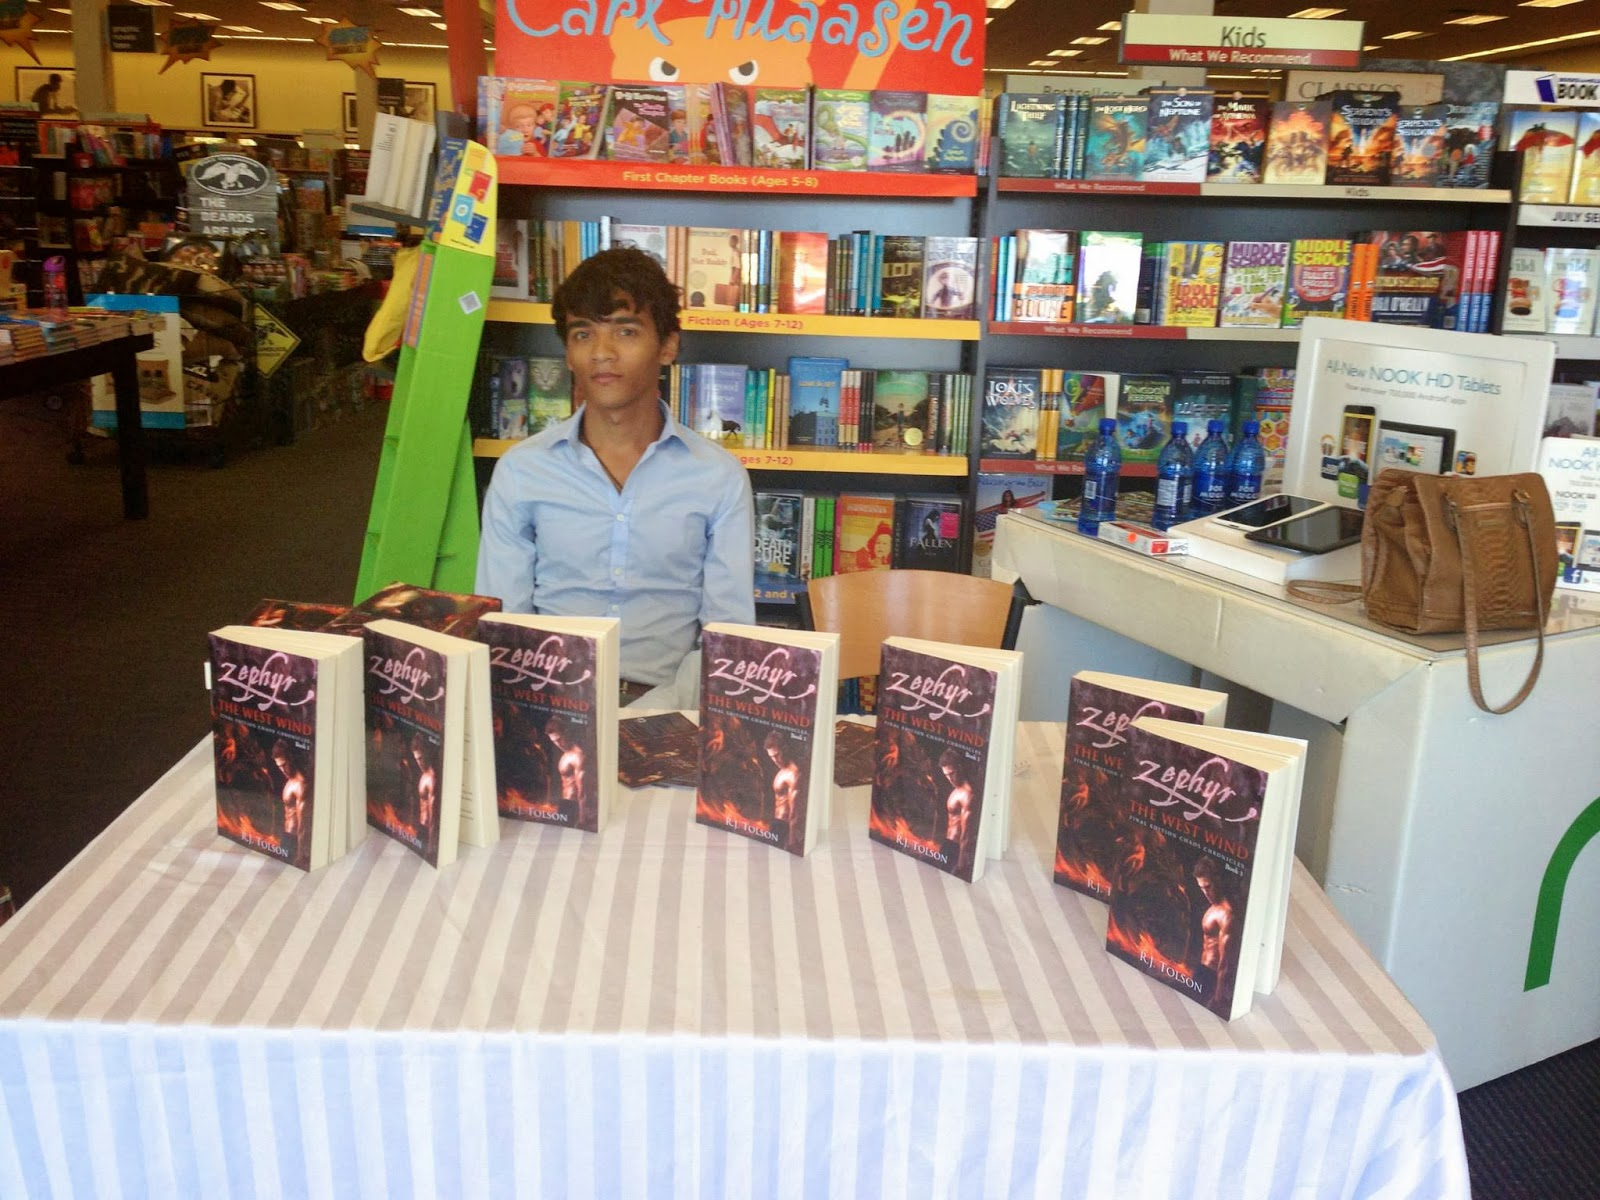 Sages of Essence: Orlando Book Signing pics from (8/2/13)